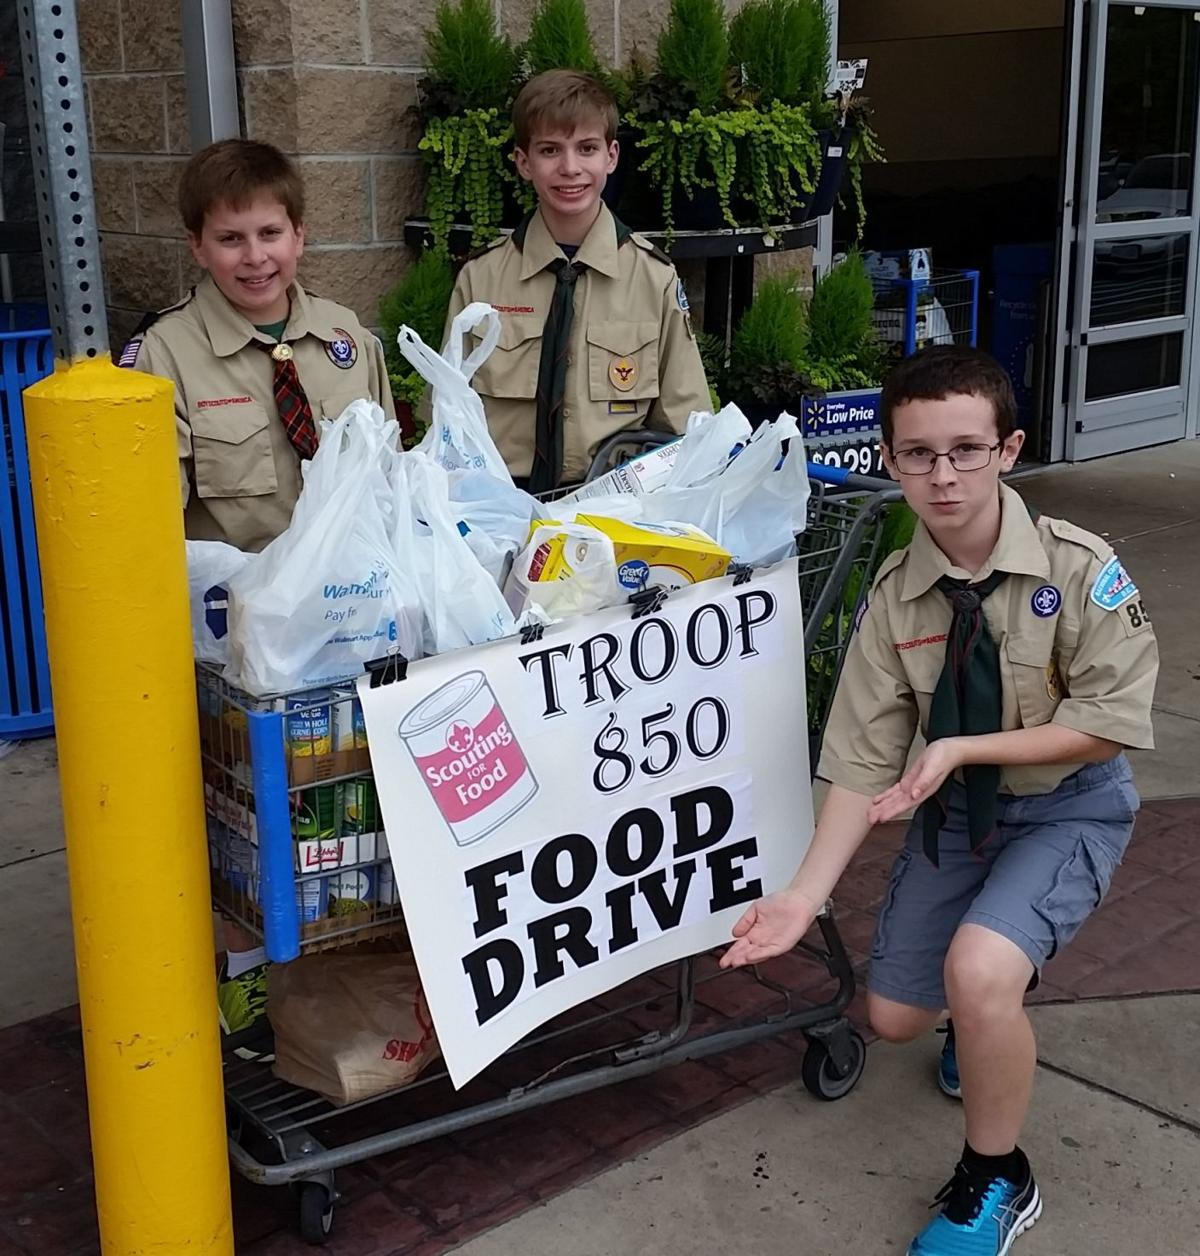 BSA Scouts are scouting for food